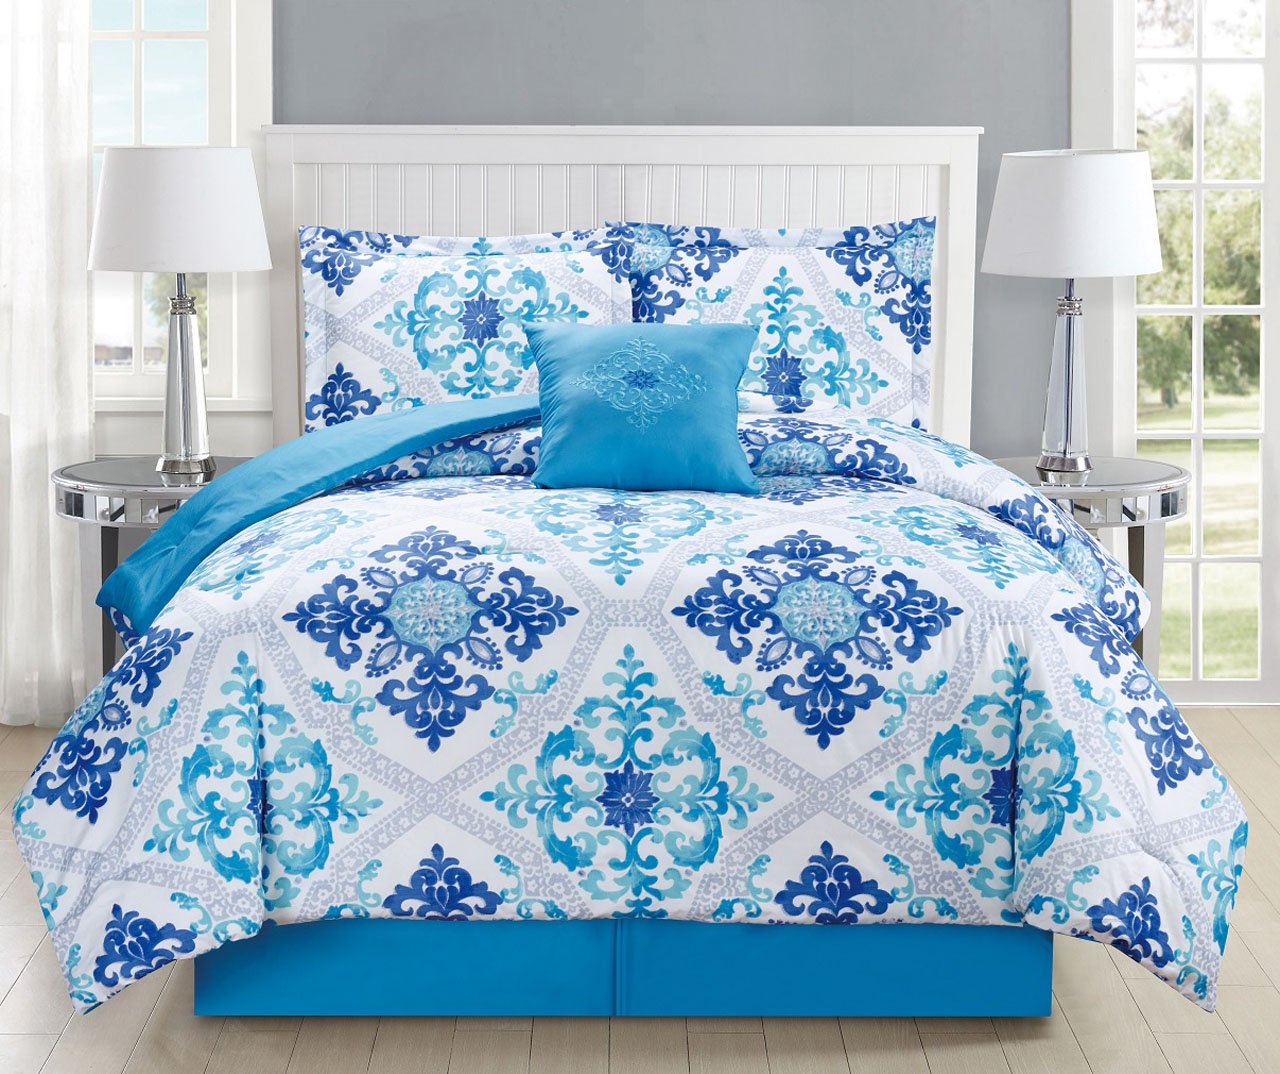 5 Piece Regal Navy Blue White Comforter Set